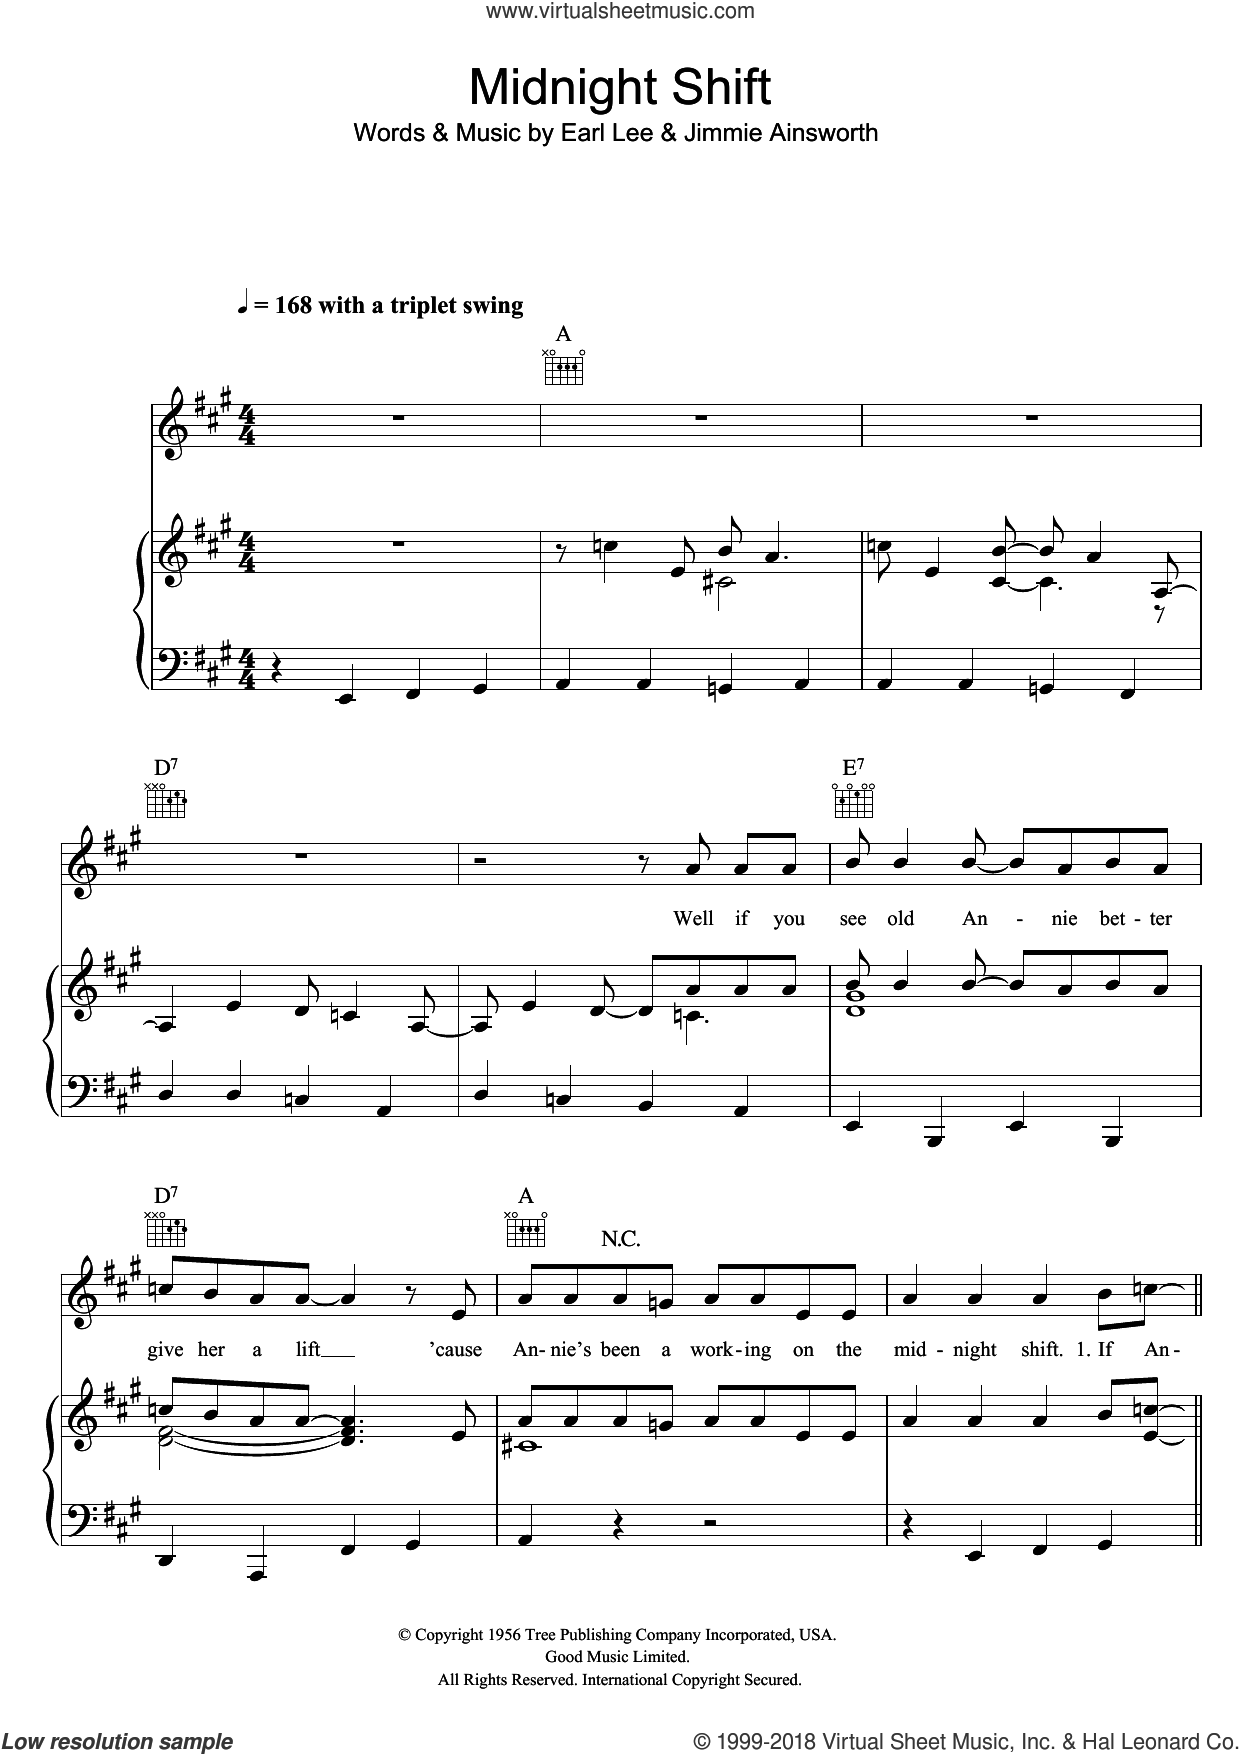 Midnight Shift sheet music for voice, piano or guitar by Buddy Holly, Earl Lee and Jimmie Ainsworth, intermediate skill level